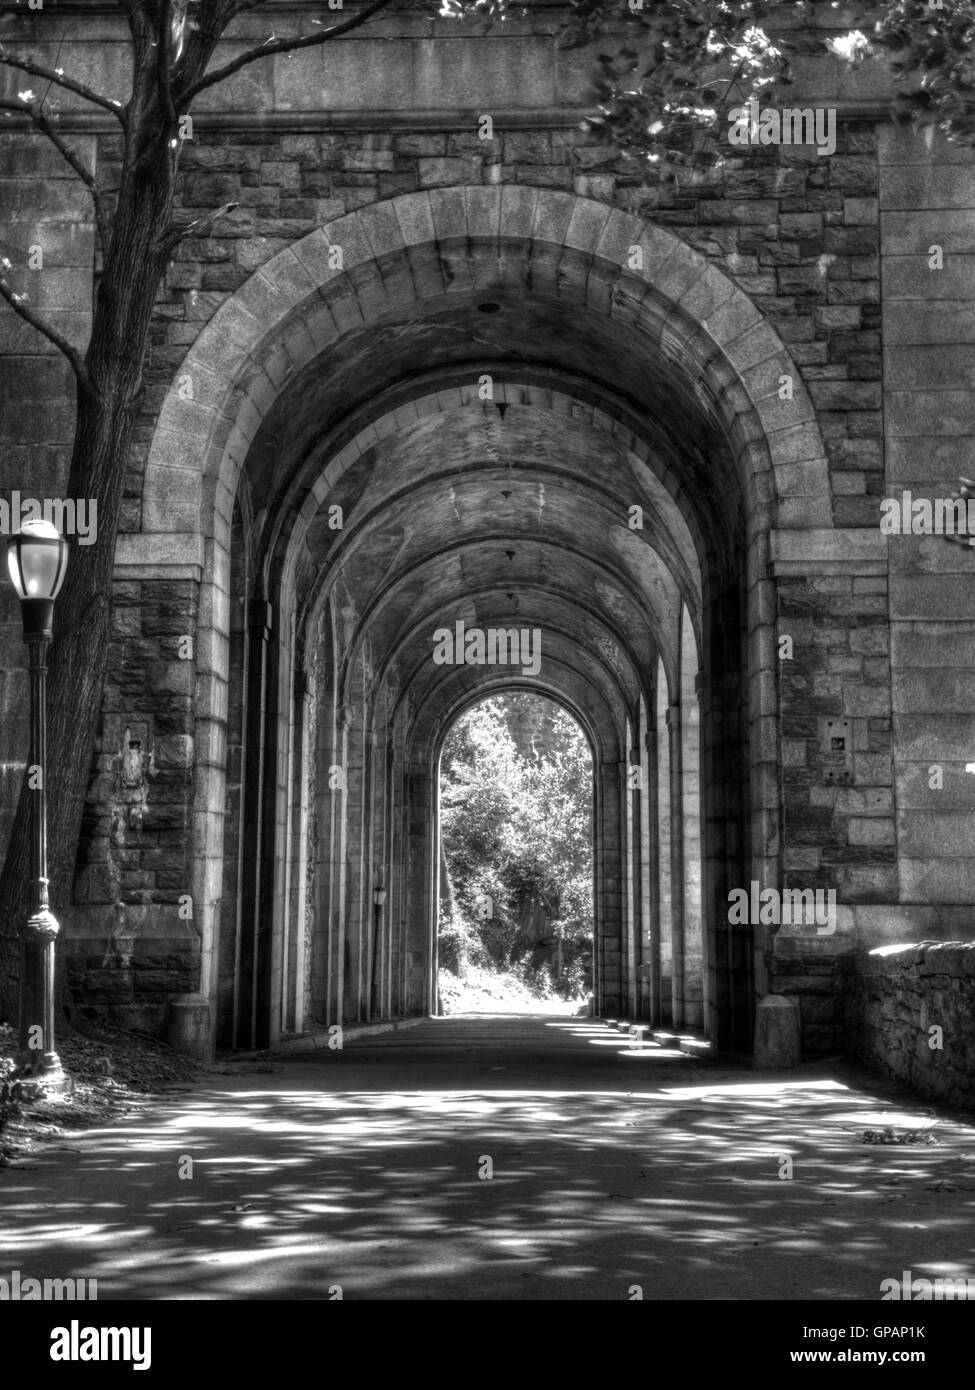 Arcade of Fort Tryon Park - Stock Image